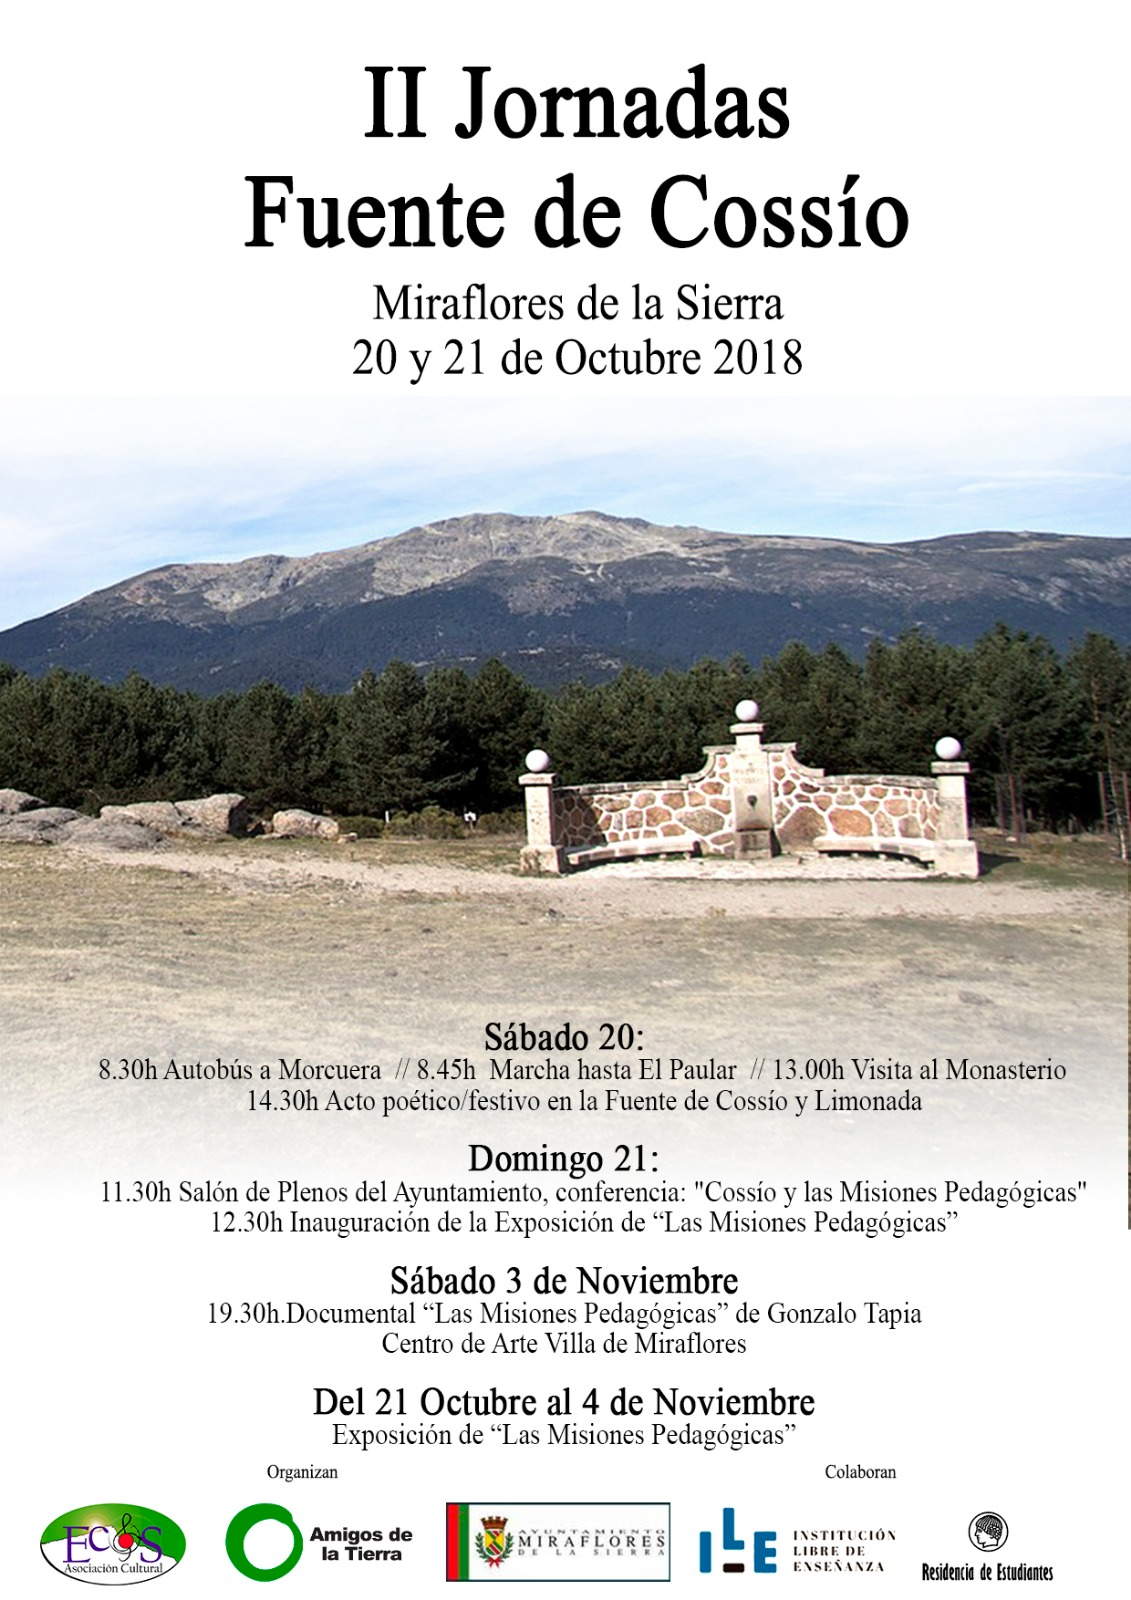 Ir a Madrid: Conferencia, exposición y documental «Cossío y las Misiones Pedagógicas»